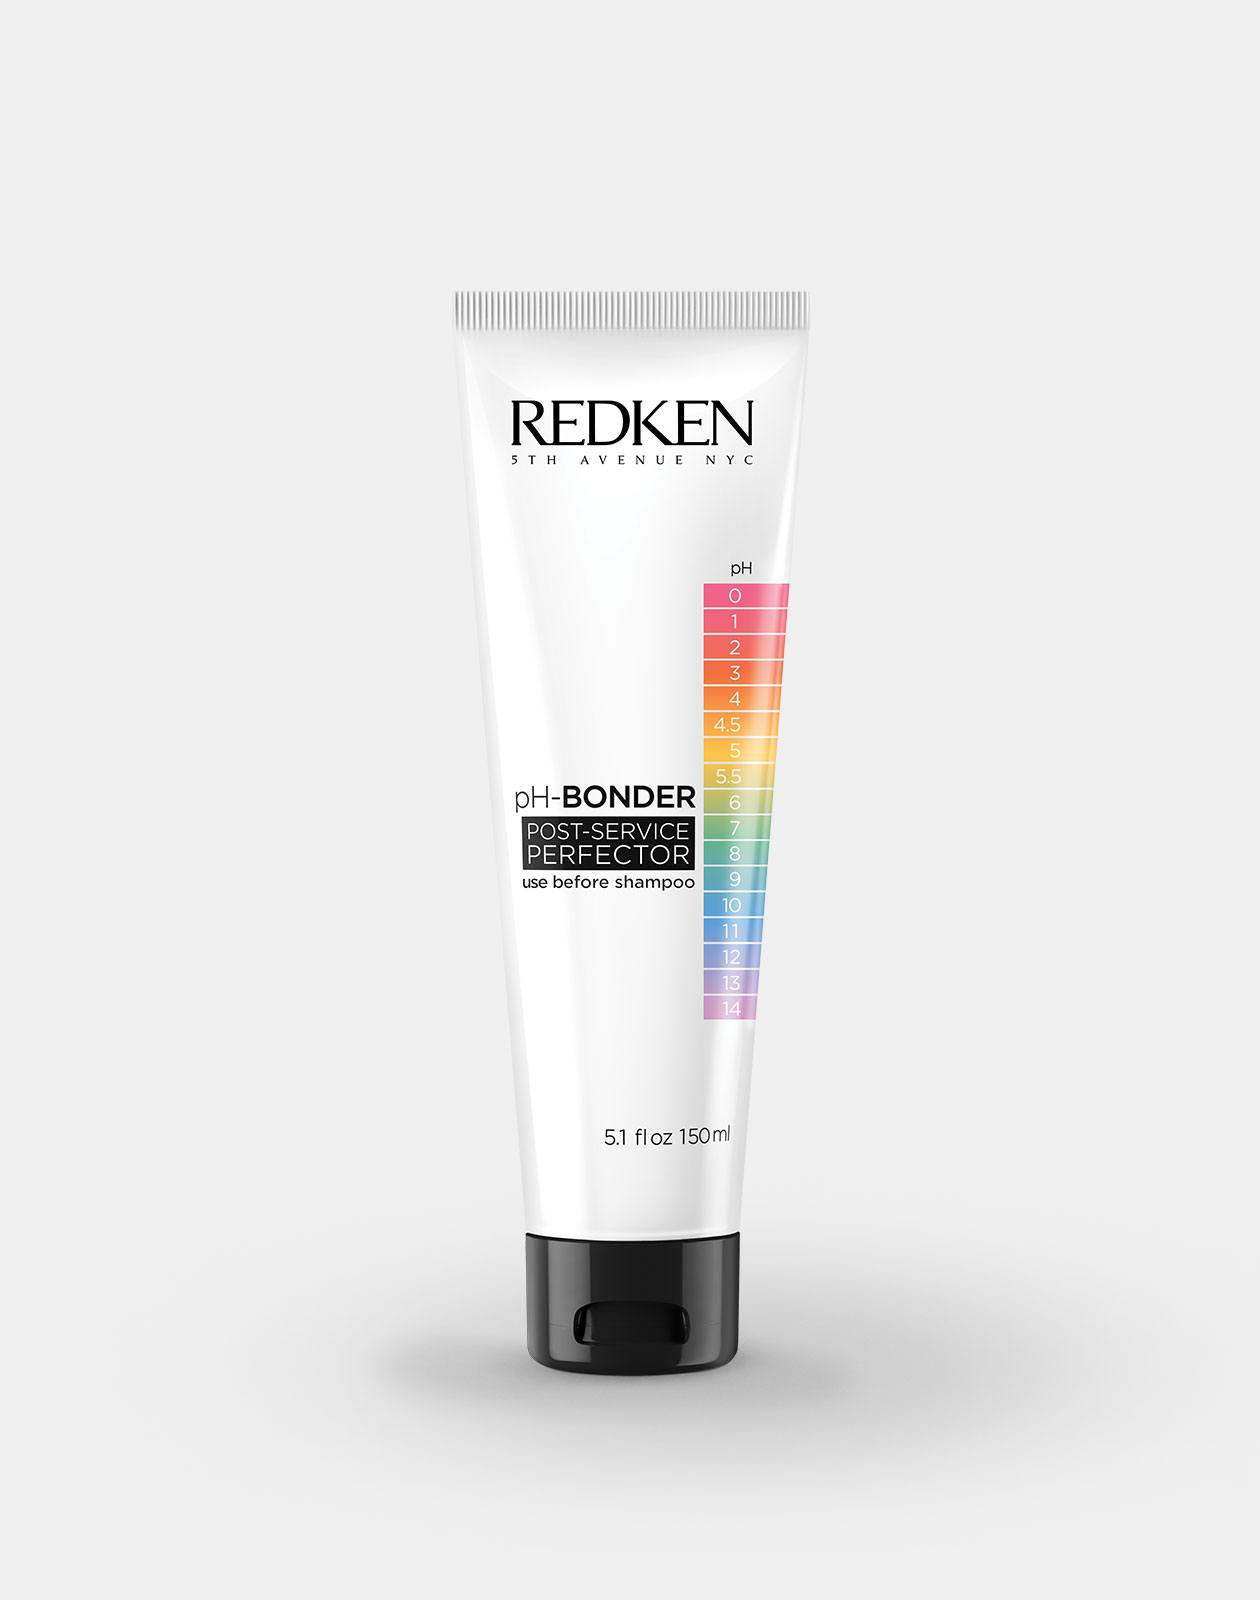 PH Bonder Post Service Perfector